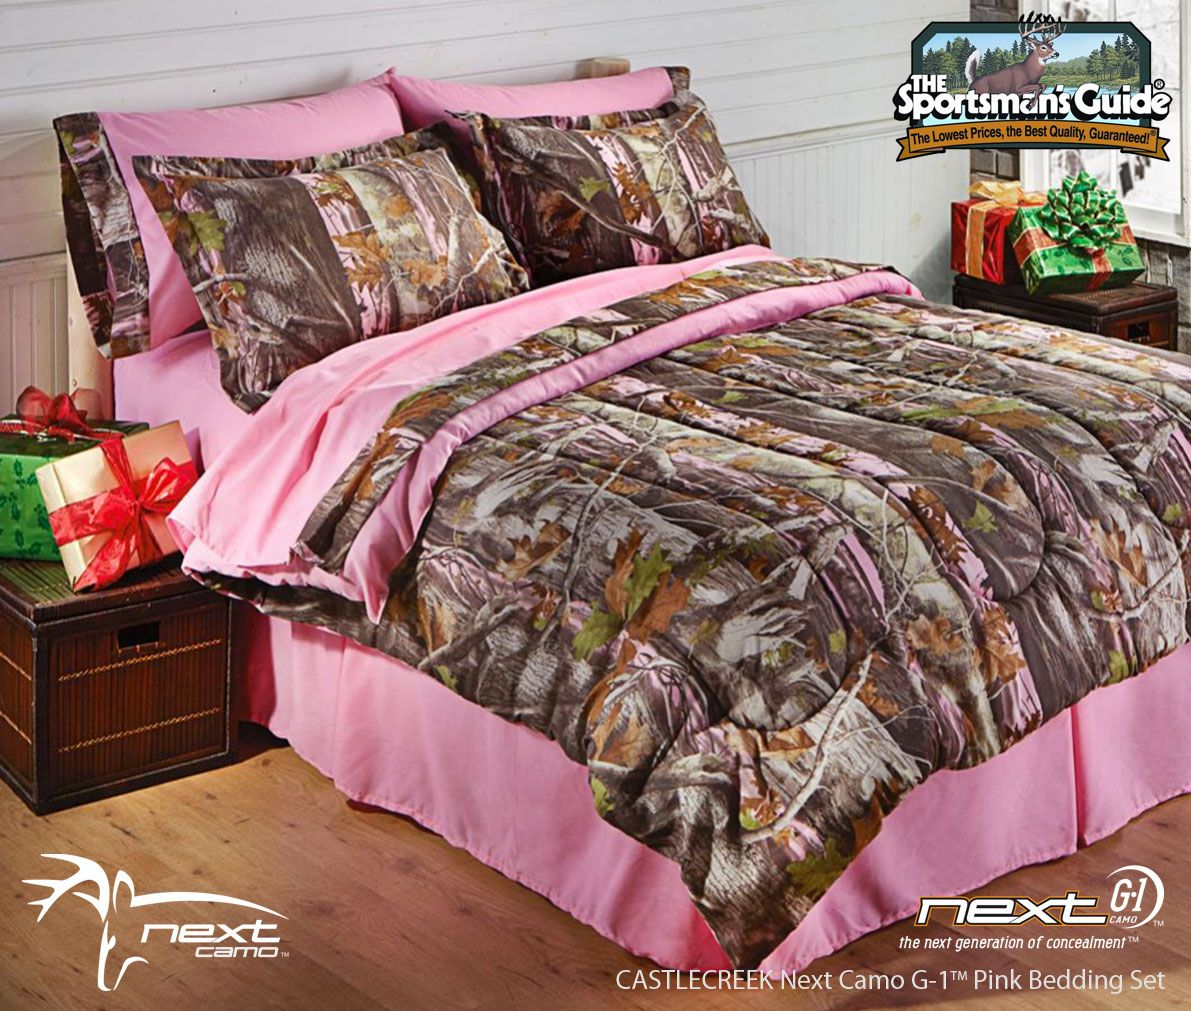 Pink Realtree Bed Next Camo Bedding From CastleCreek Now - Black and grey camouflage comforter set